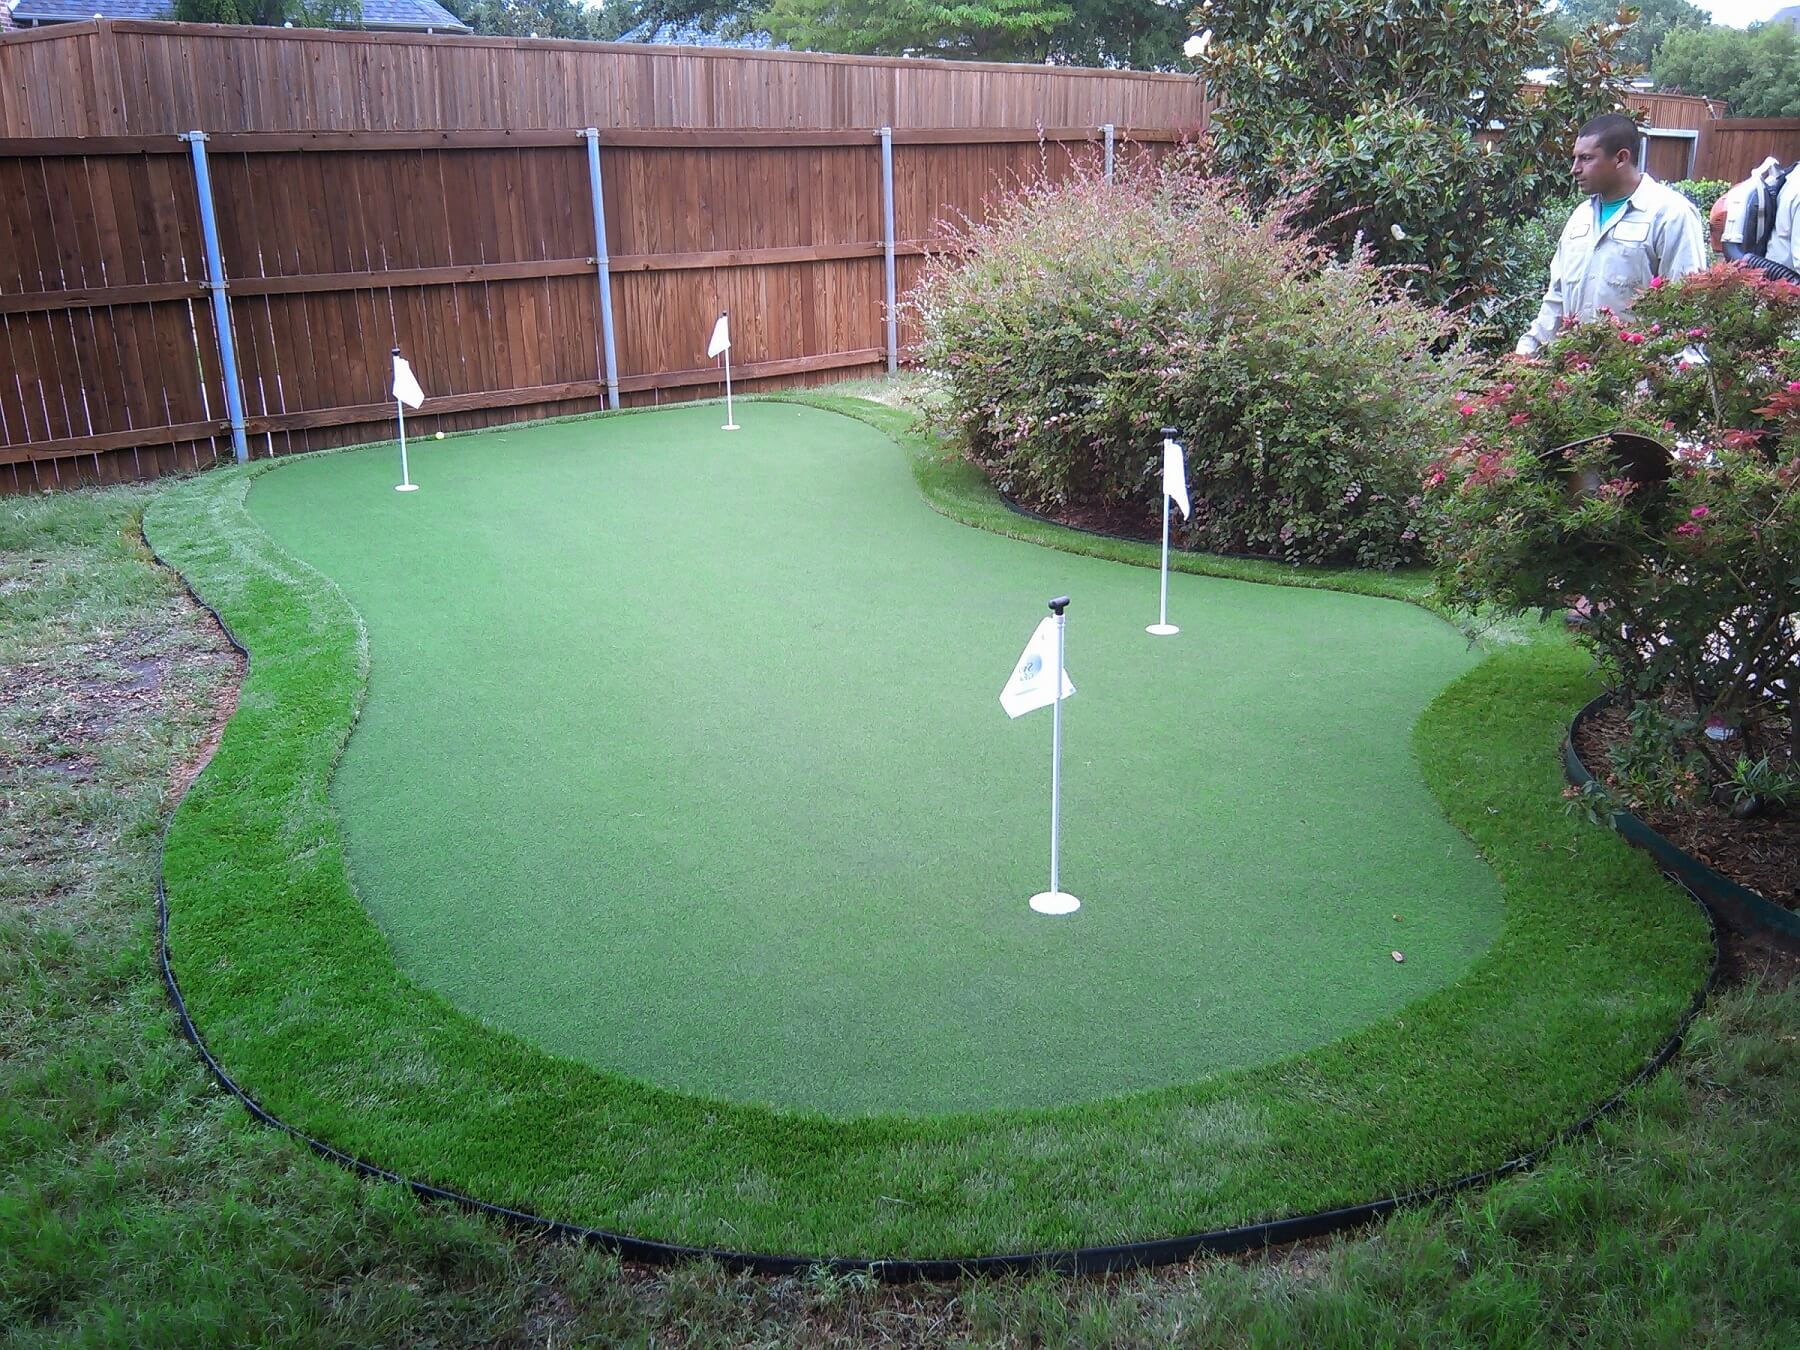 Texas Fake Grass - Putting Greens